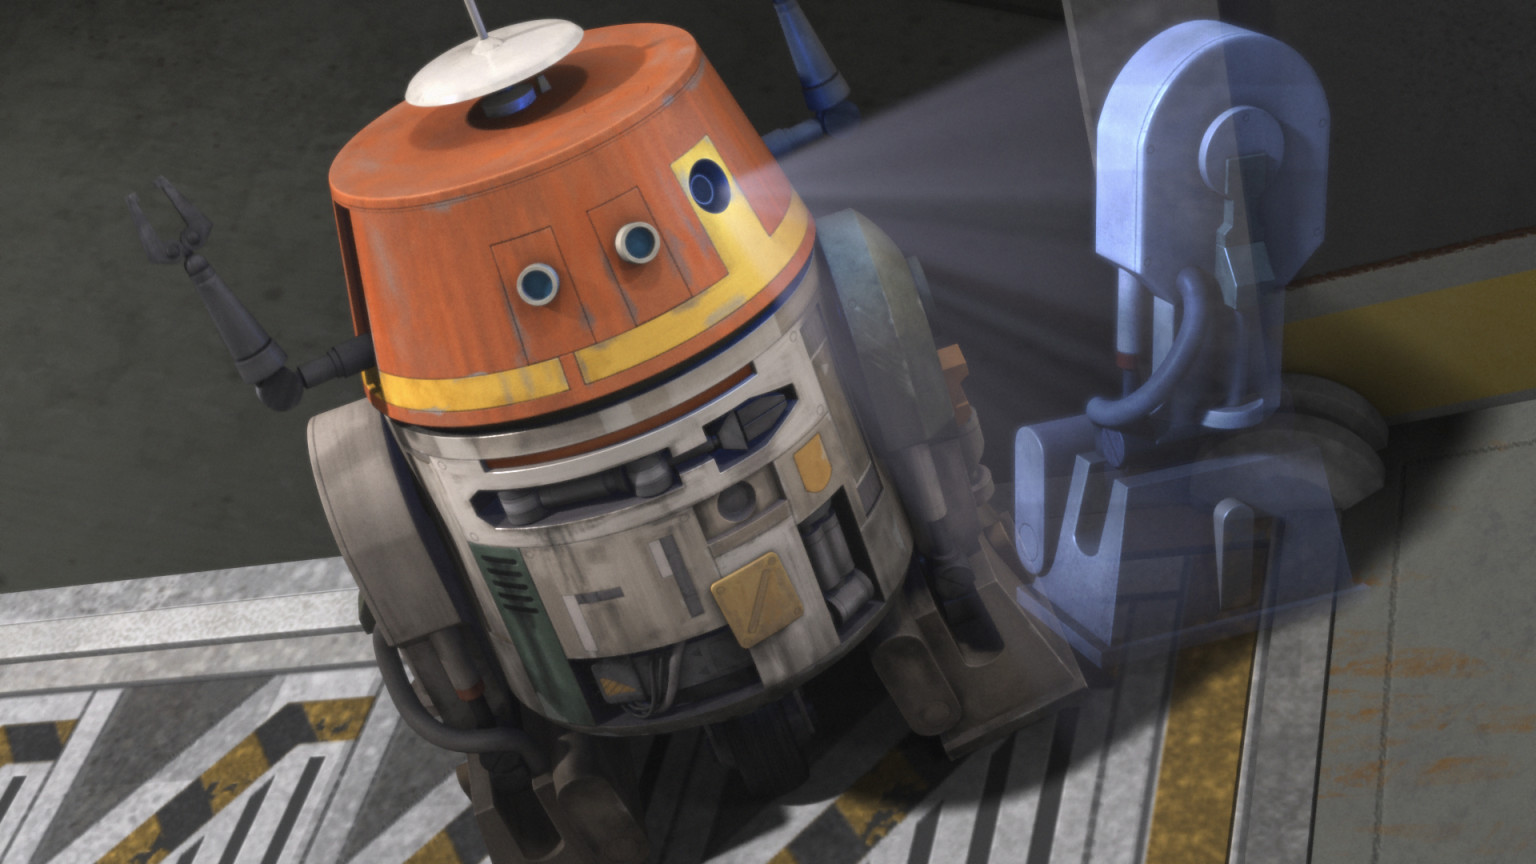 Chopper projecting an image of an astromech droid component